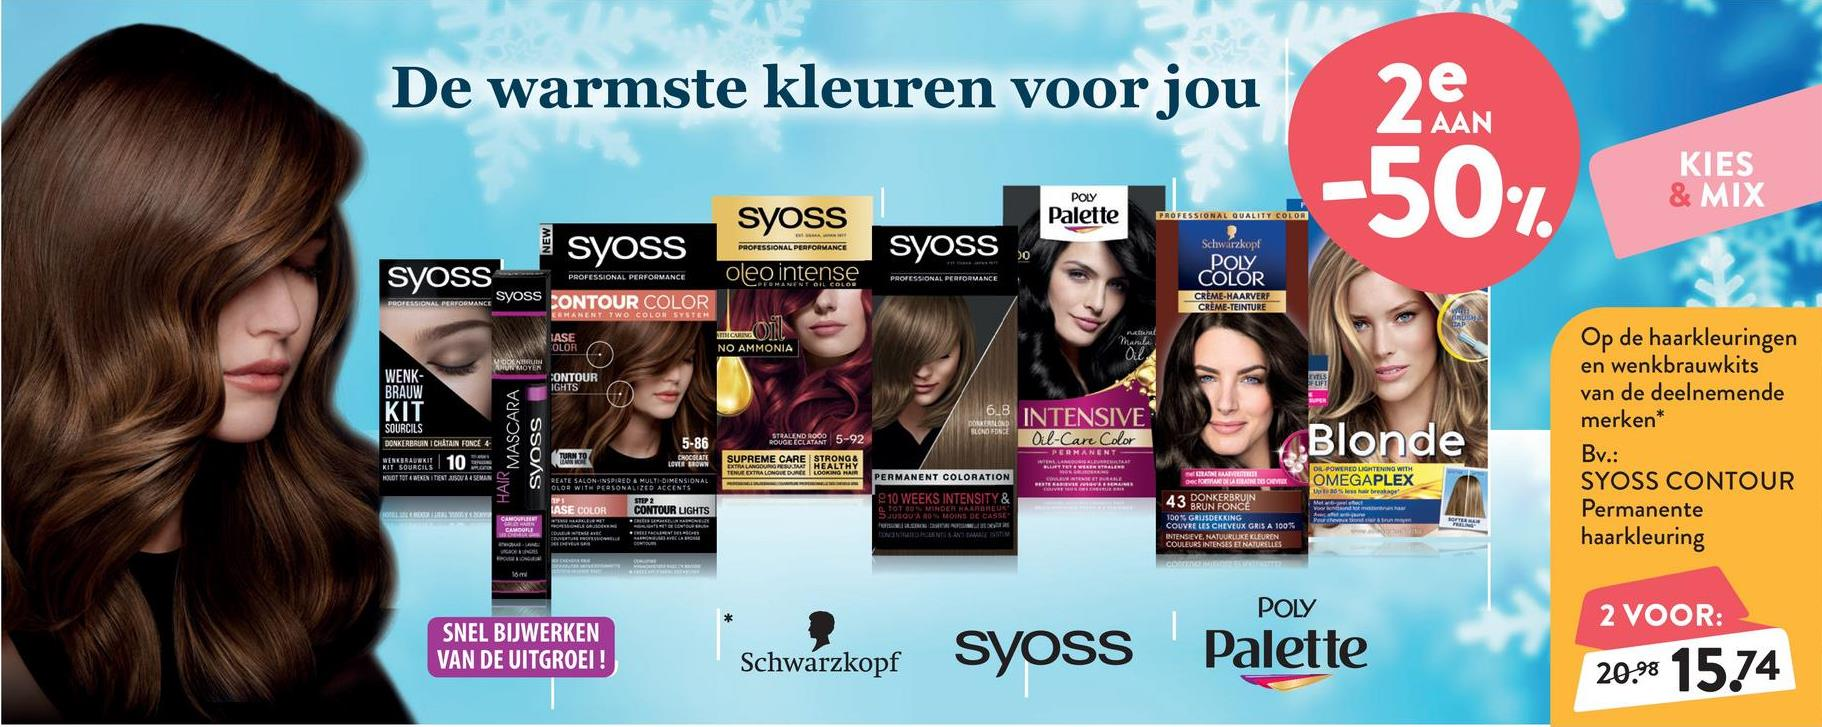 SYOSS Contour Coloration 5-86 Chocolate Lover Brown SYOSS Contour Coloration 5-86 Chocolate Lover Brown